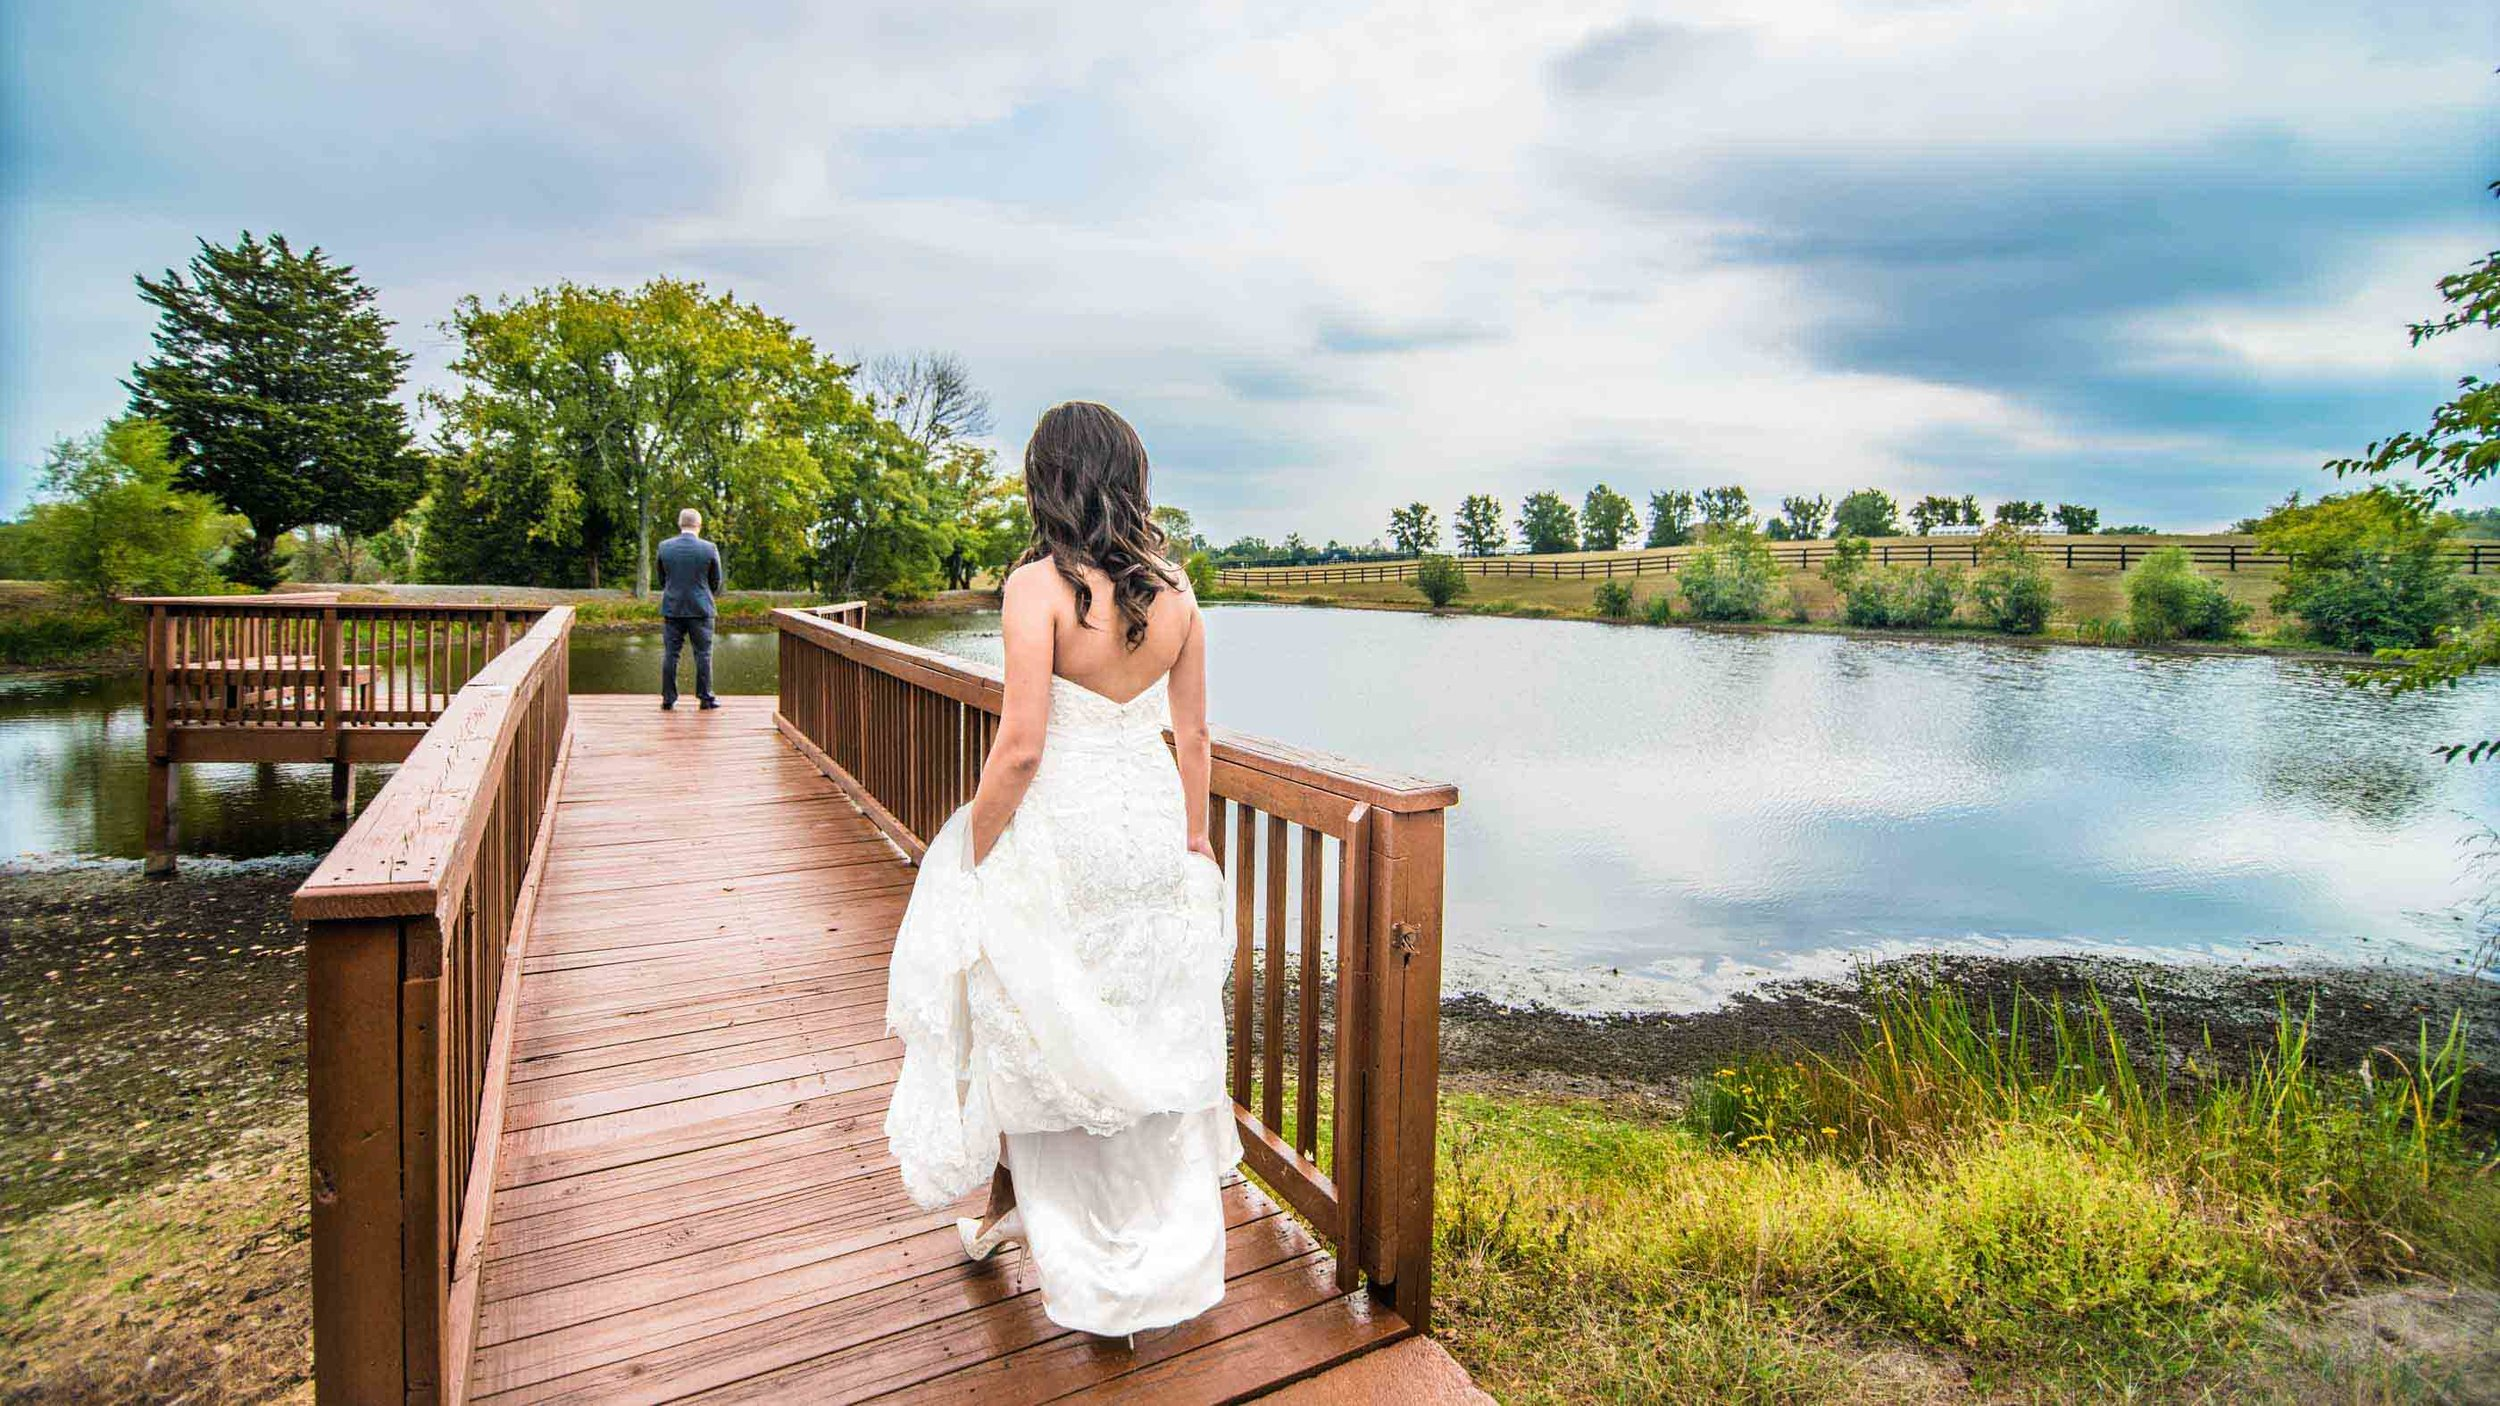 Wedding+Photography+WashingtonDC+Leesburg+NOVA+Weddings+Photographer+Vadym+Guliuk